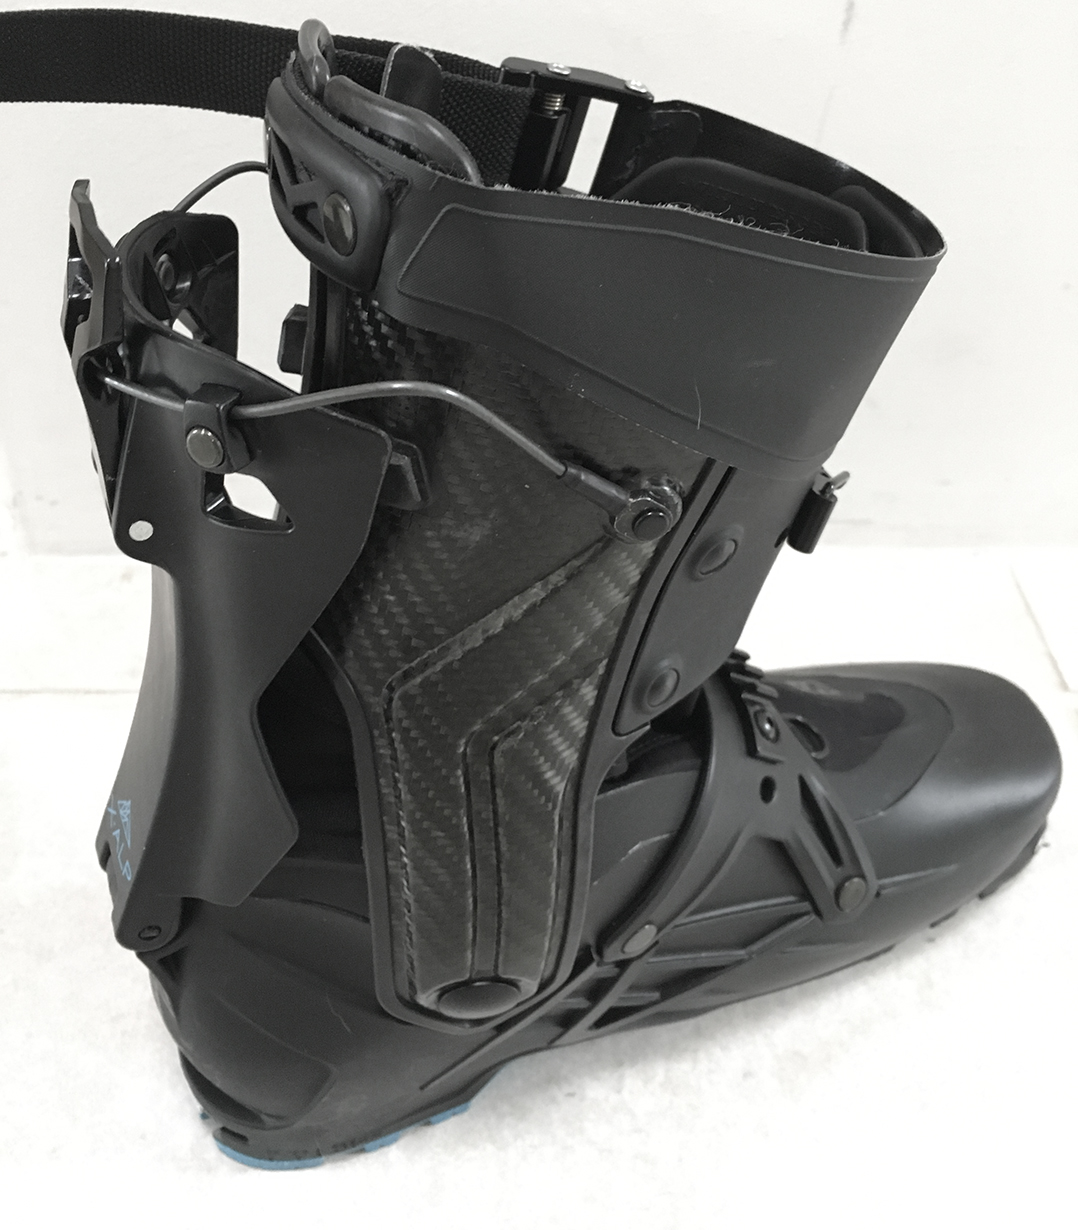 Blister Gear Review reviews the Salomon S-Lab X-Alp boot for Blister Gear Review.